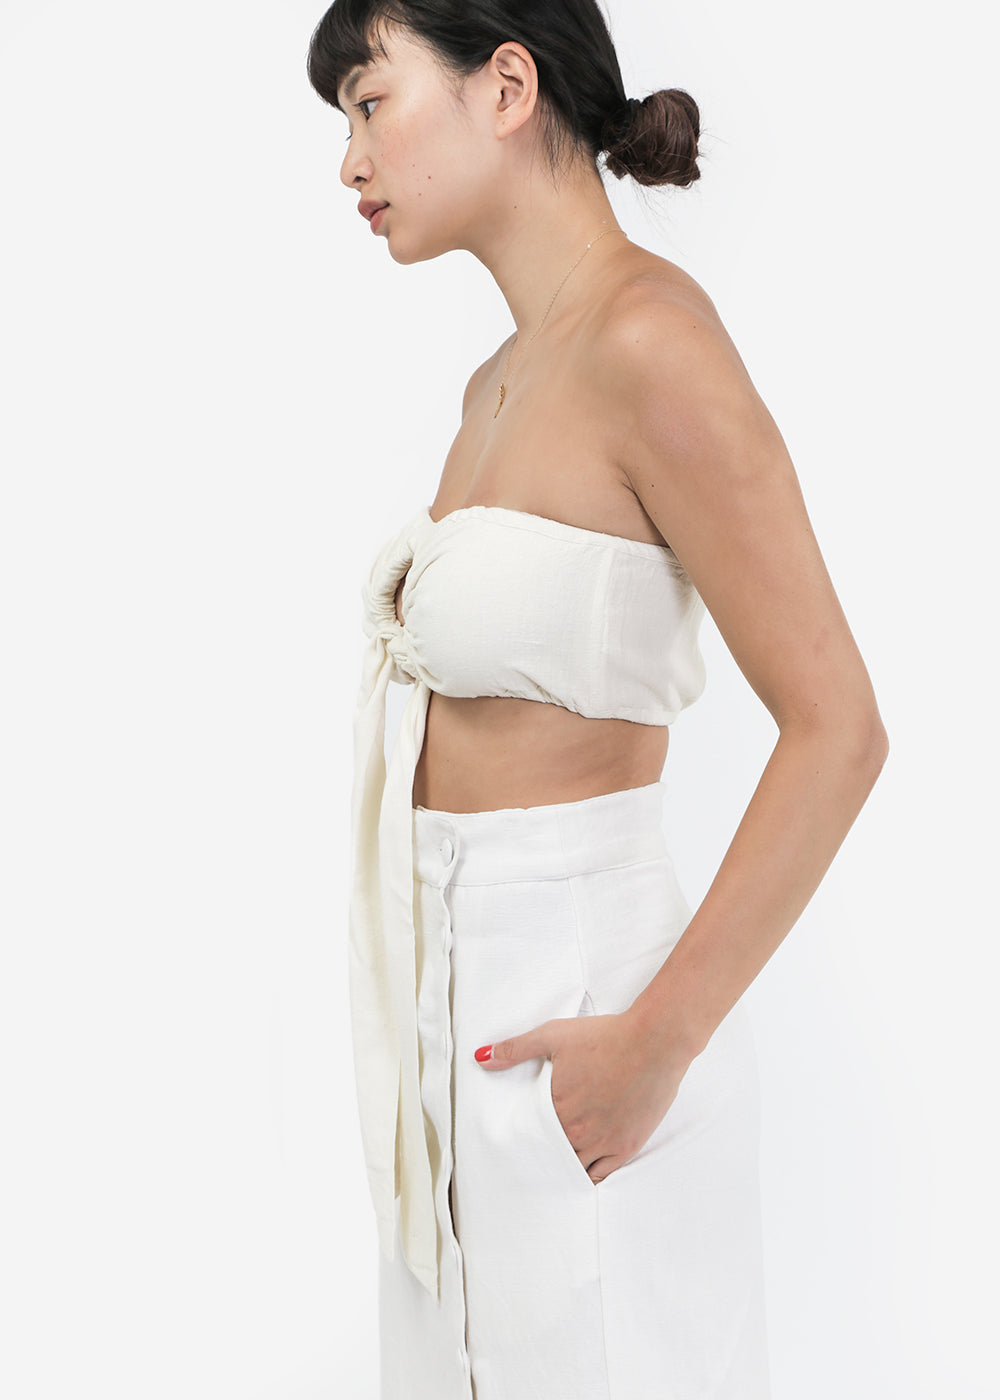 Ajaie Alaie Seemingly Bandeau — Shop sustainable fashion and slow fashion at New Classics Studios